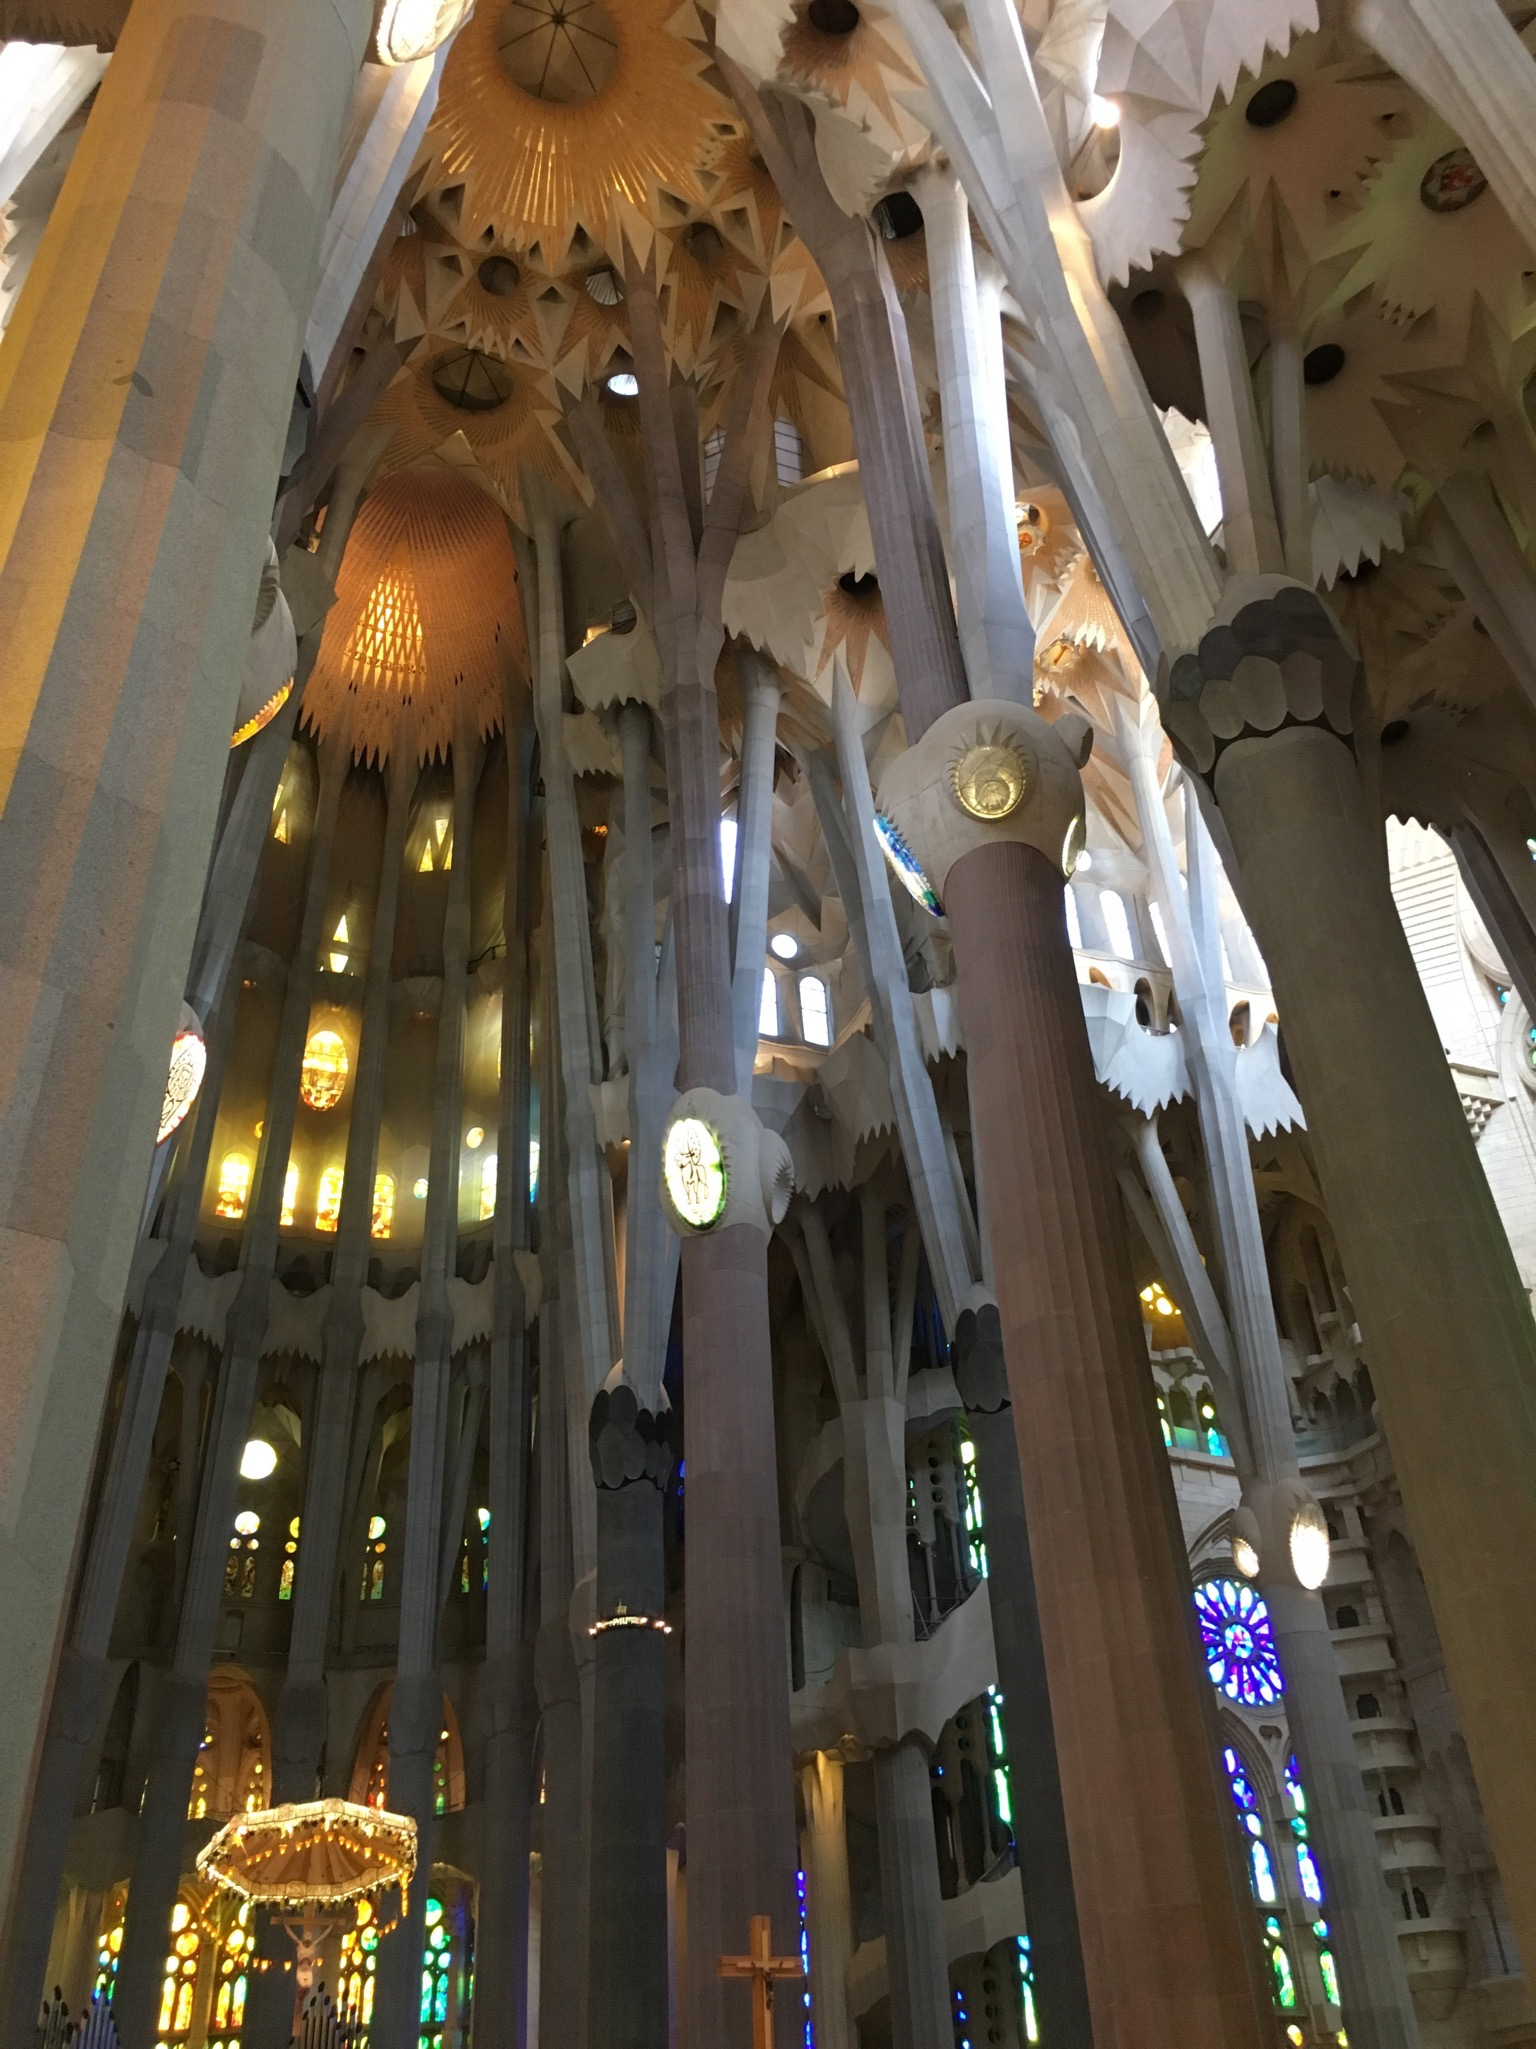 Inside the nearly completed La Sagrada Famila, Barcelona, Spain.